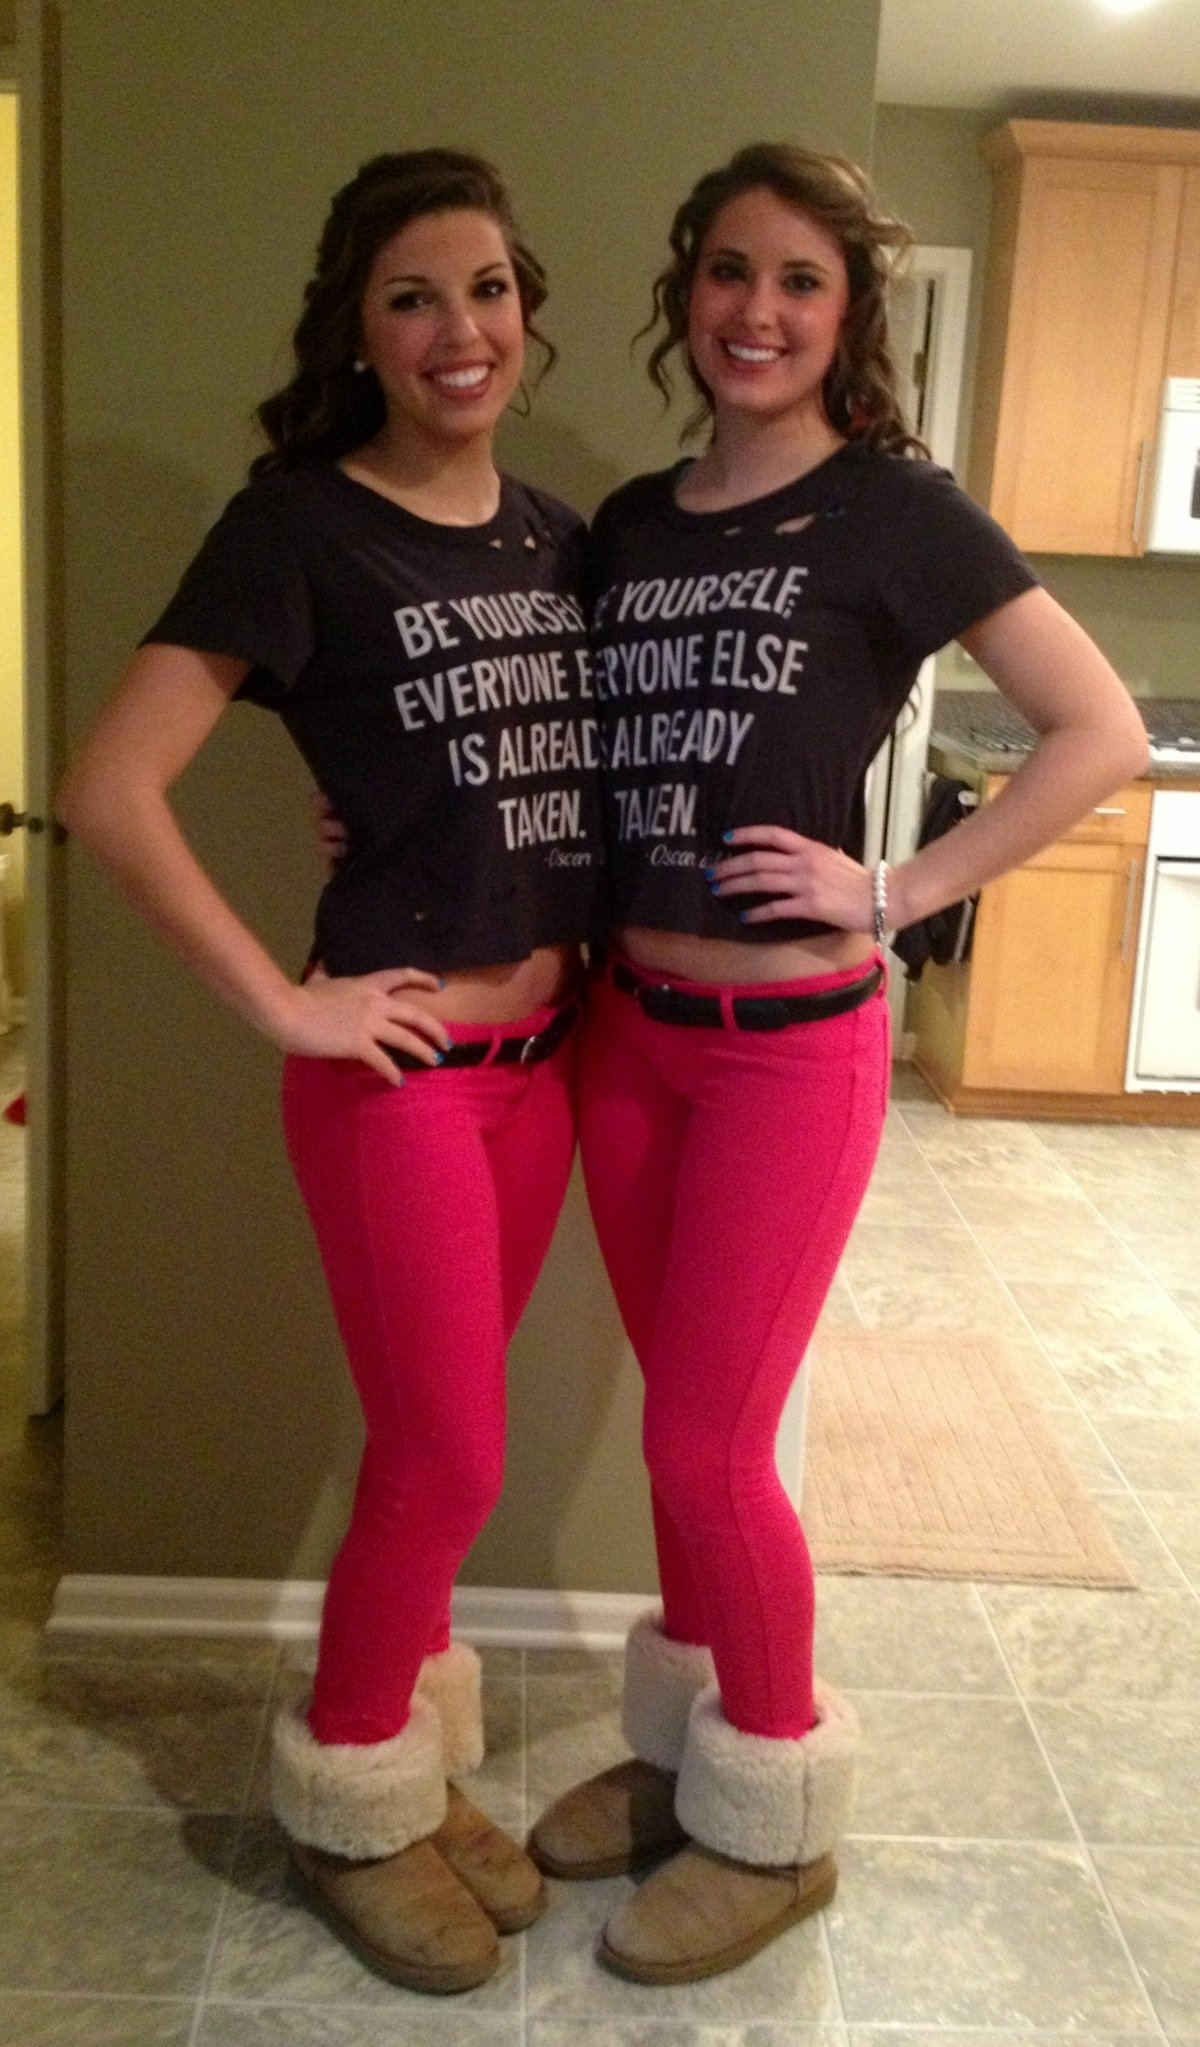 10 Elegant Costume Ideas For Two People best friend twins 3 funny halloween costumes funny stuff 23 2021